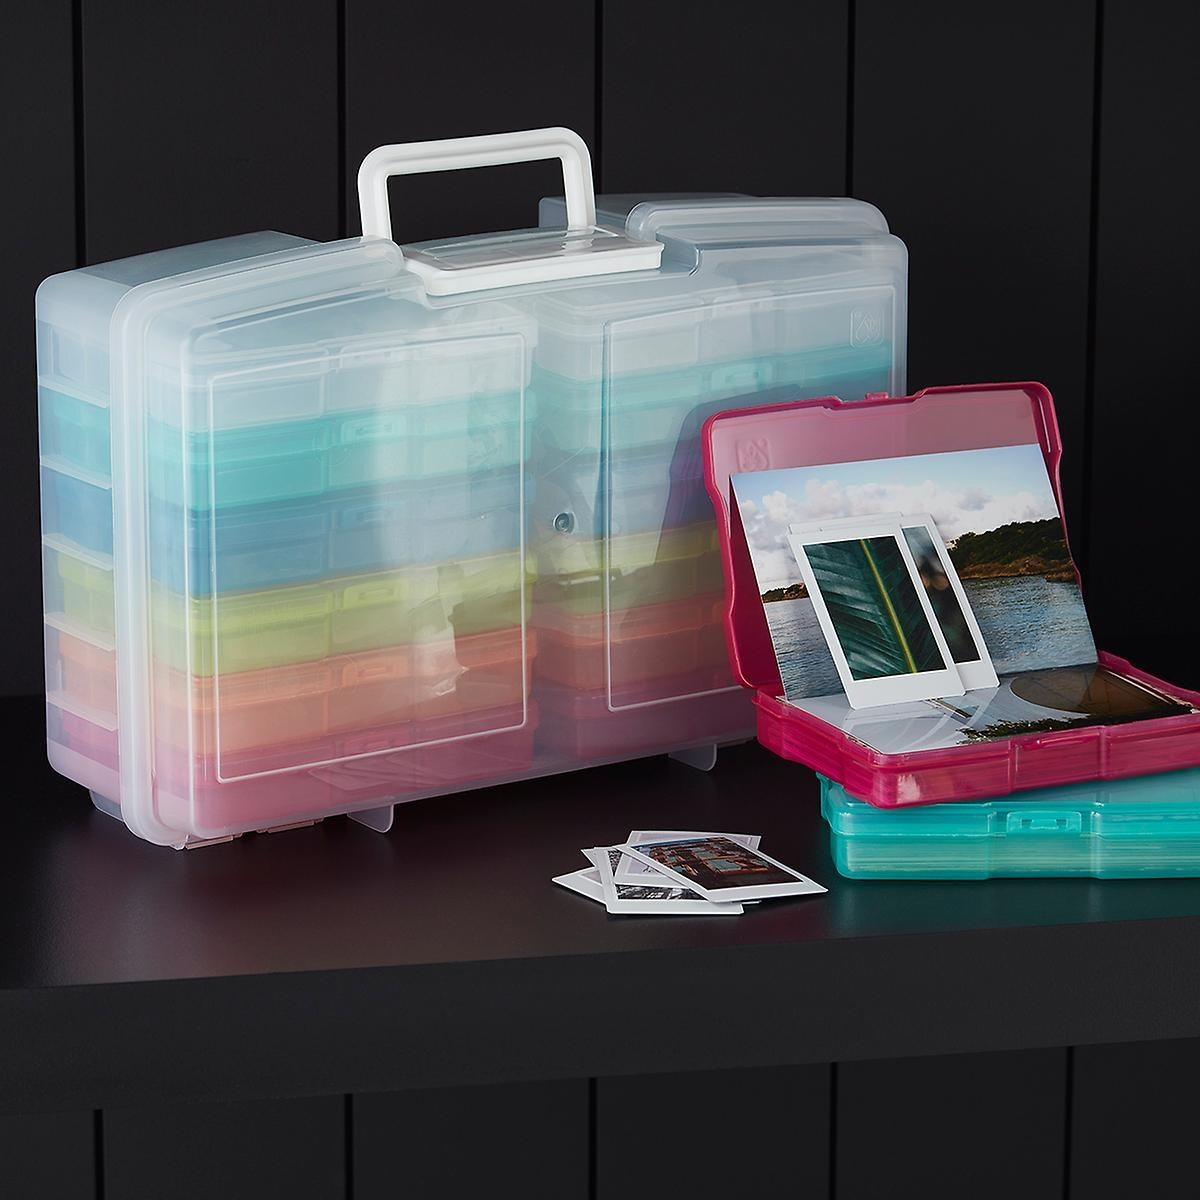 clear tackle box-like container with several smaller containers in different containers that hold stacks of 4 by 6 photos in it